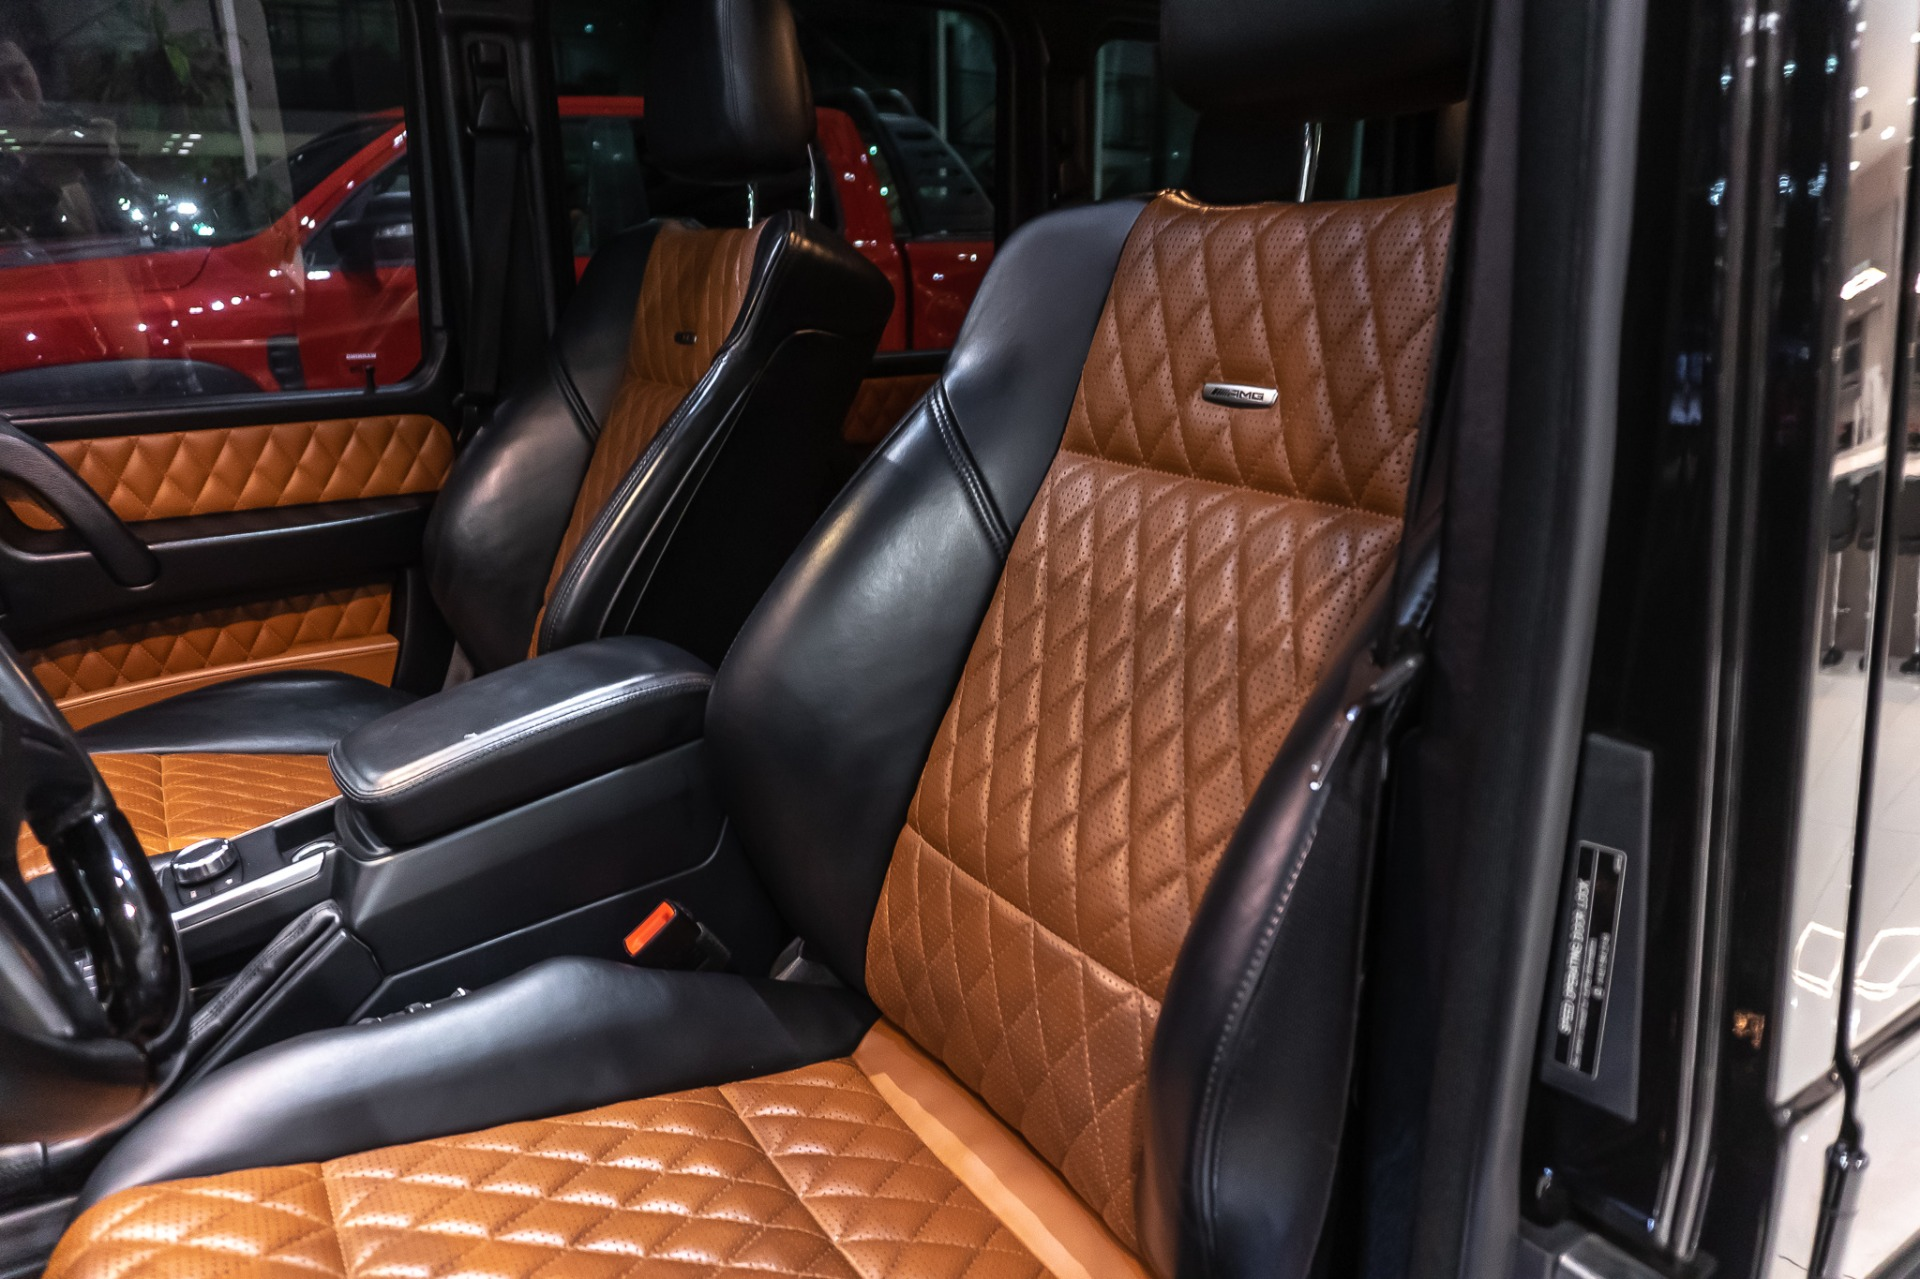 Used-2015-Mercedes-Benz-G63-AMG-SUV-DESIGNO-LEATHER-PKG-AMG-SPORT-SEATS